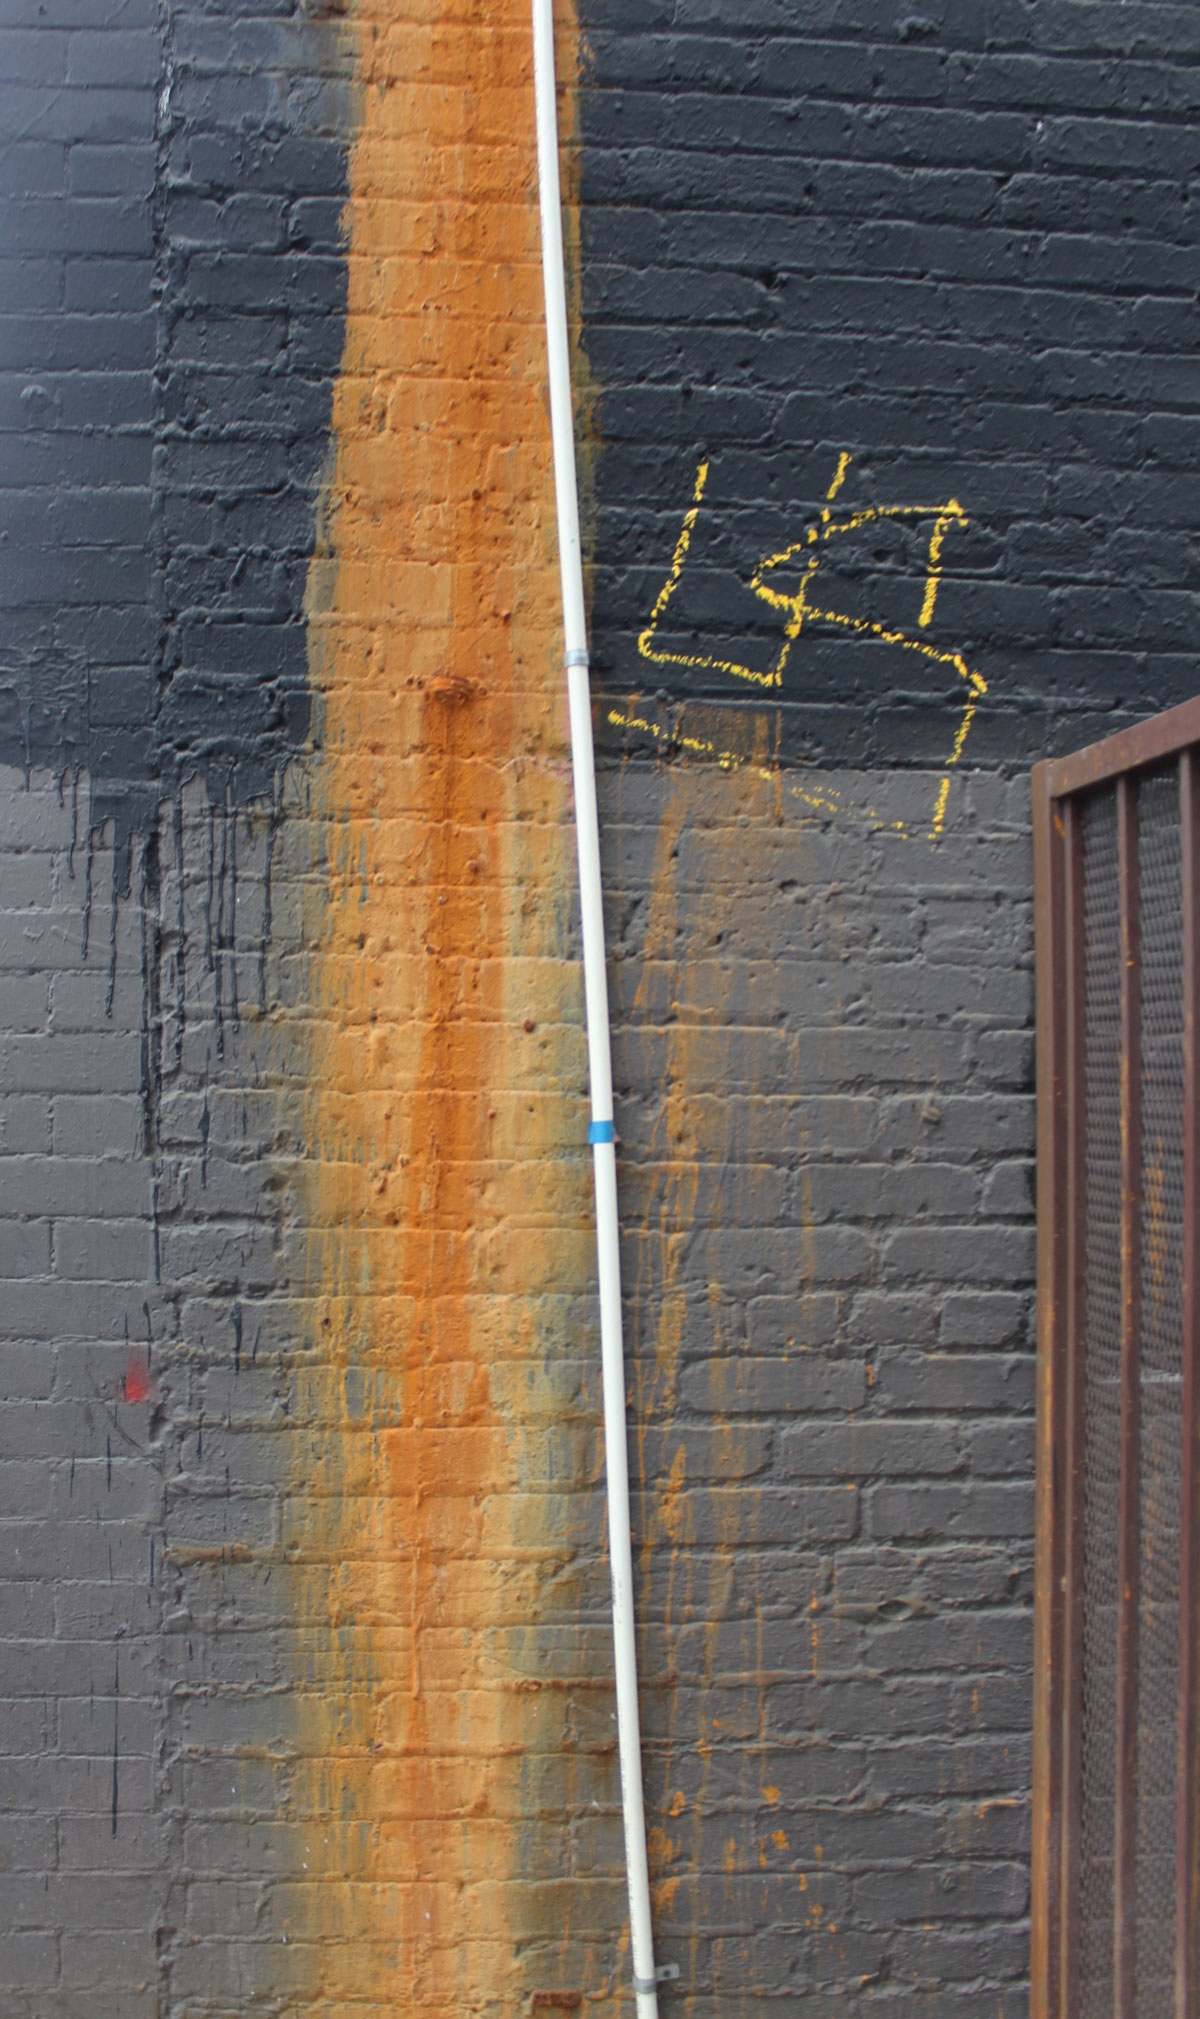 black and grey wall with orange rust due to a water leak and yellow graffiti lettering